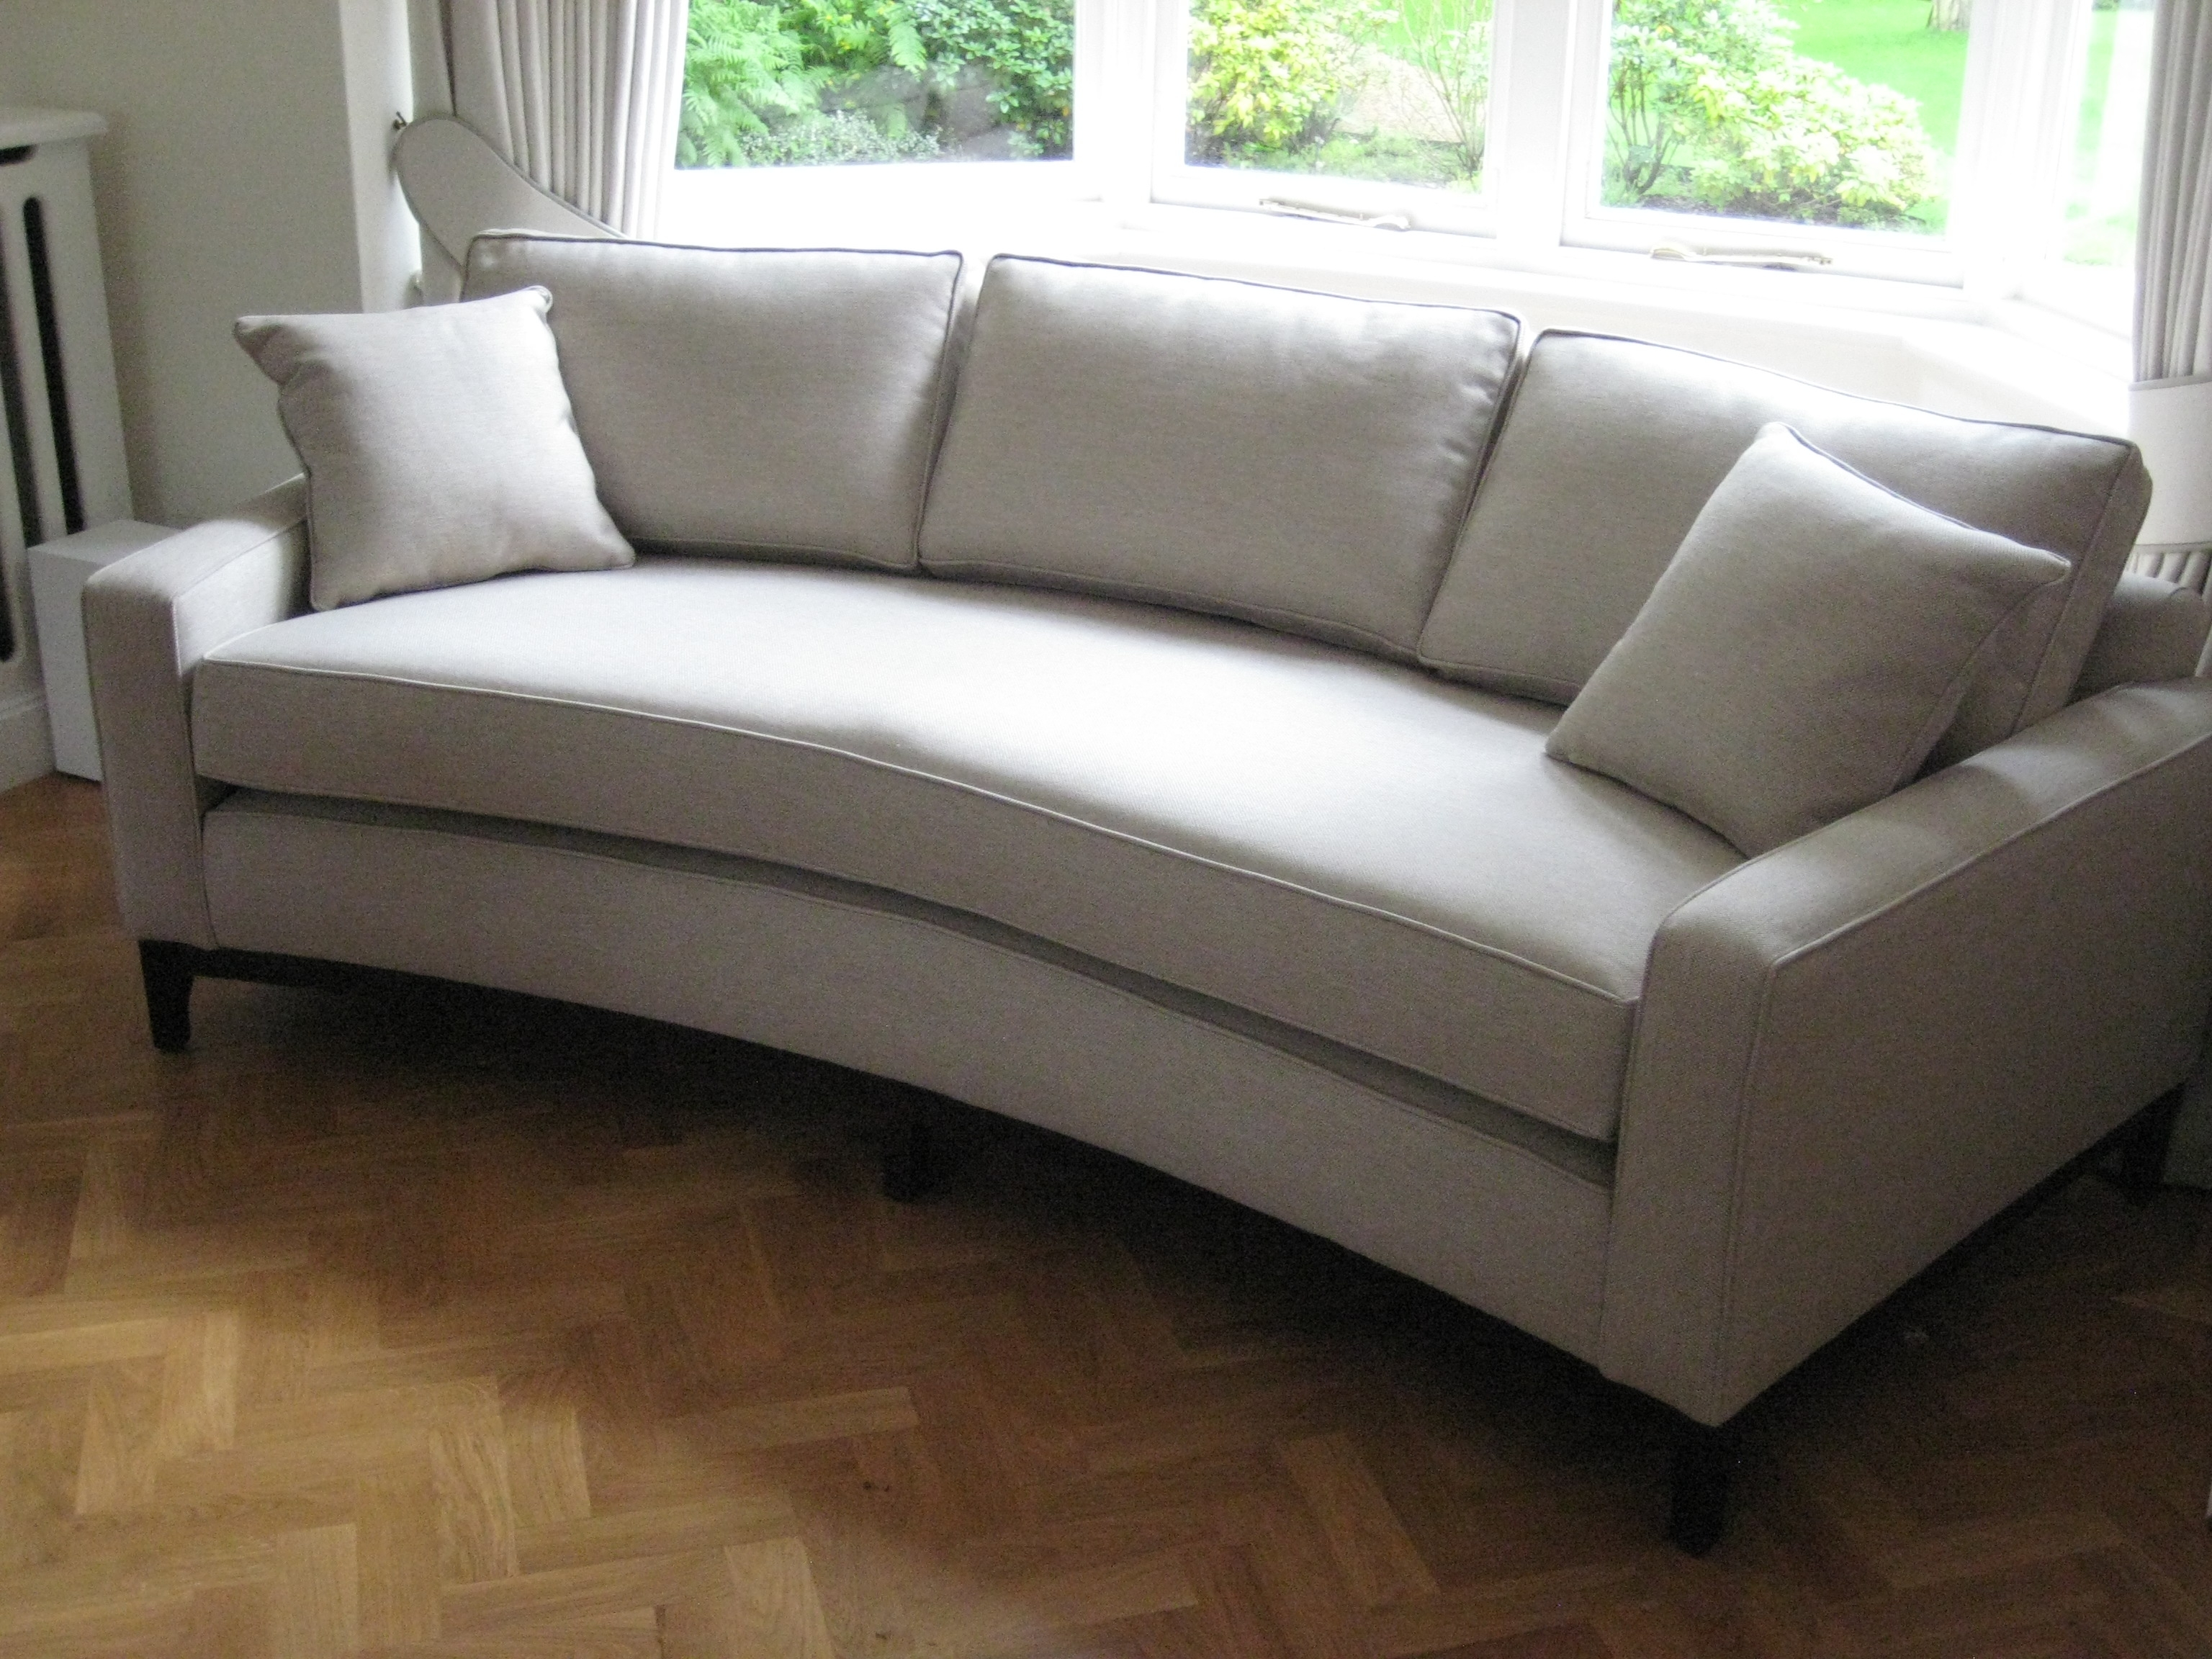 18 Best Curved Sofas British Bespoke Images On Pinterest Throughout Bespoke Corner Sofas (Image 1 of 15)